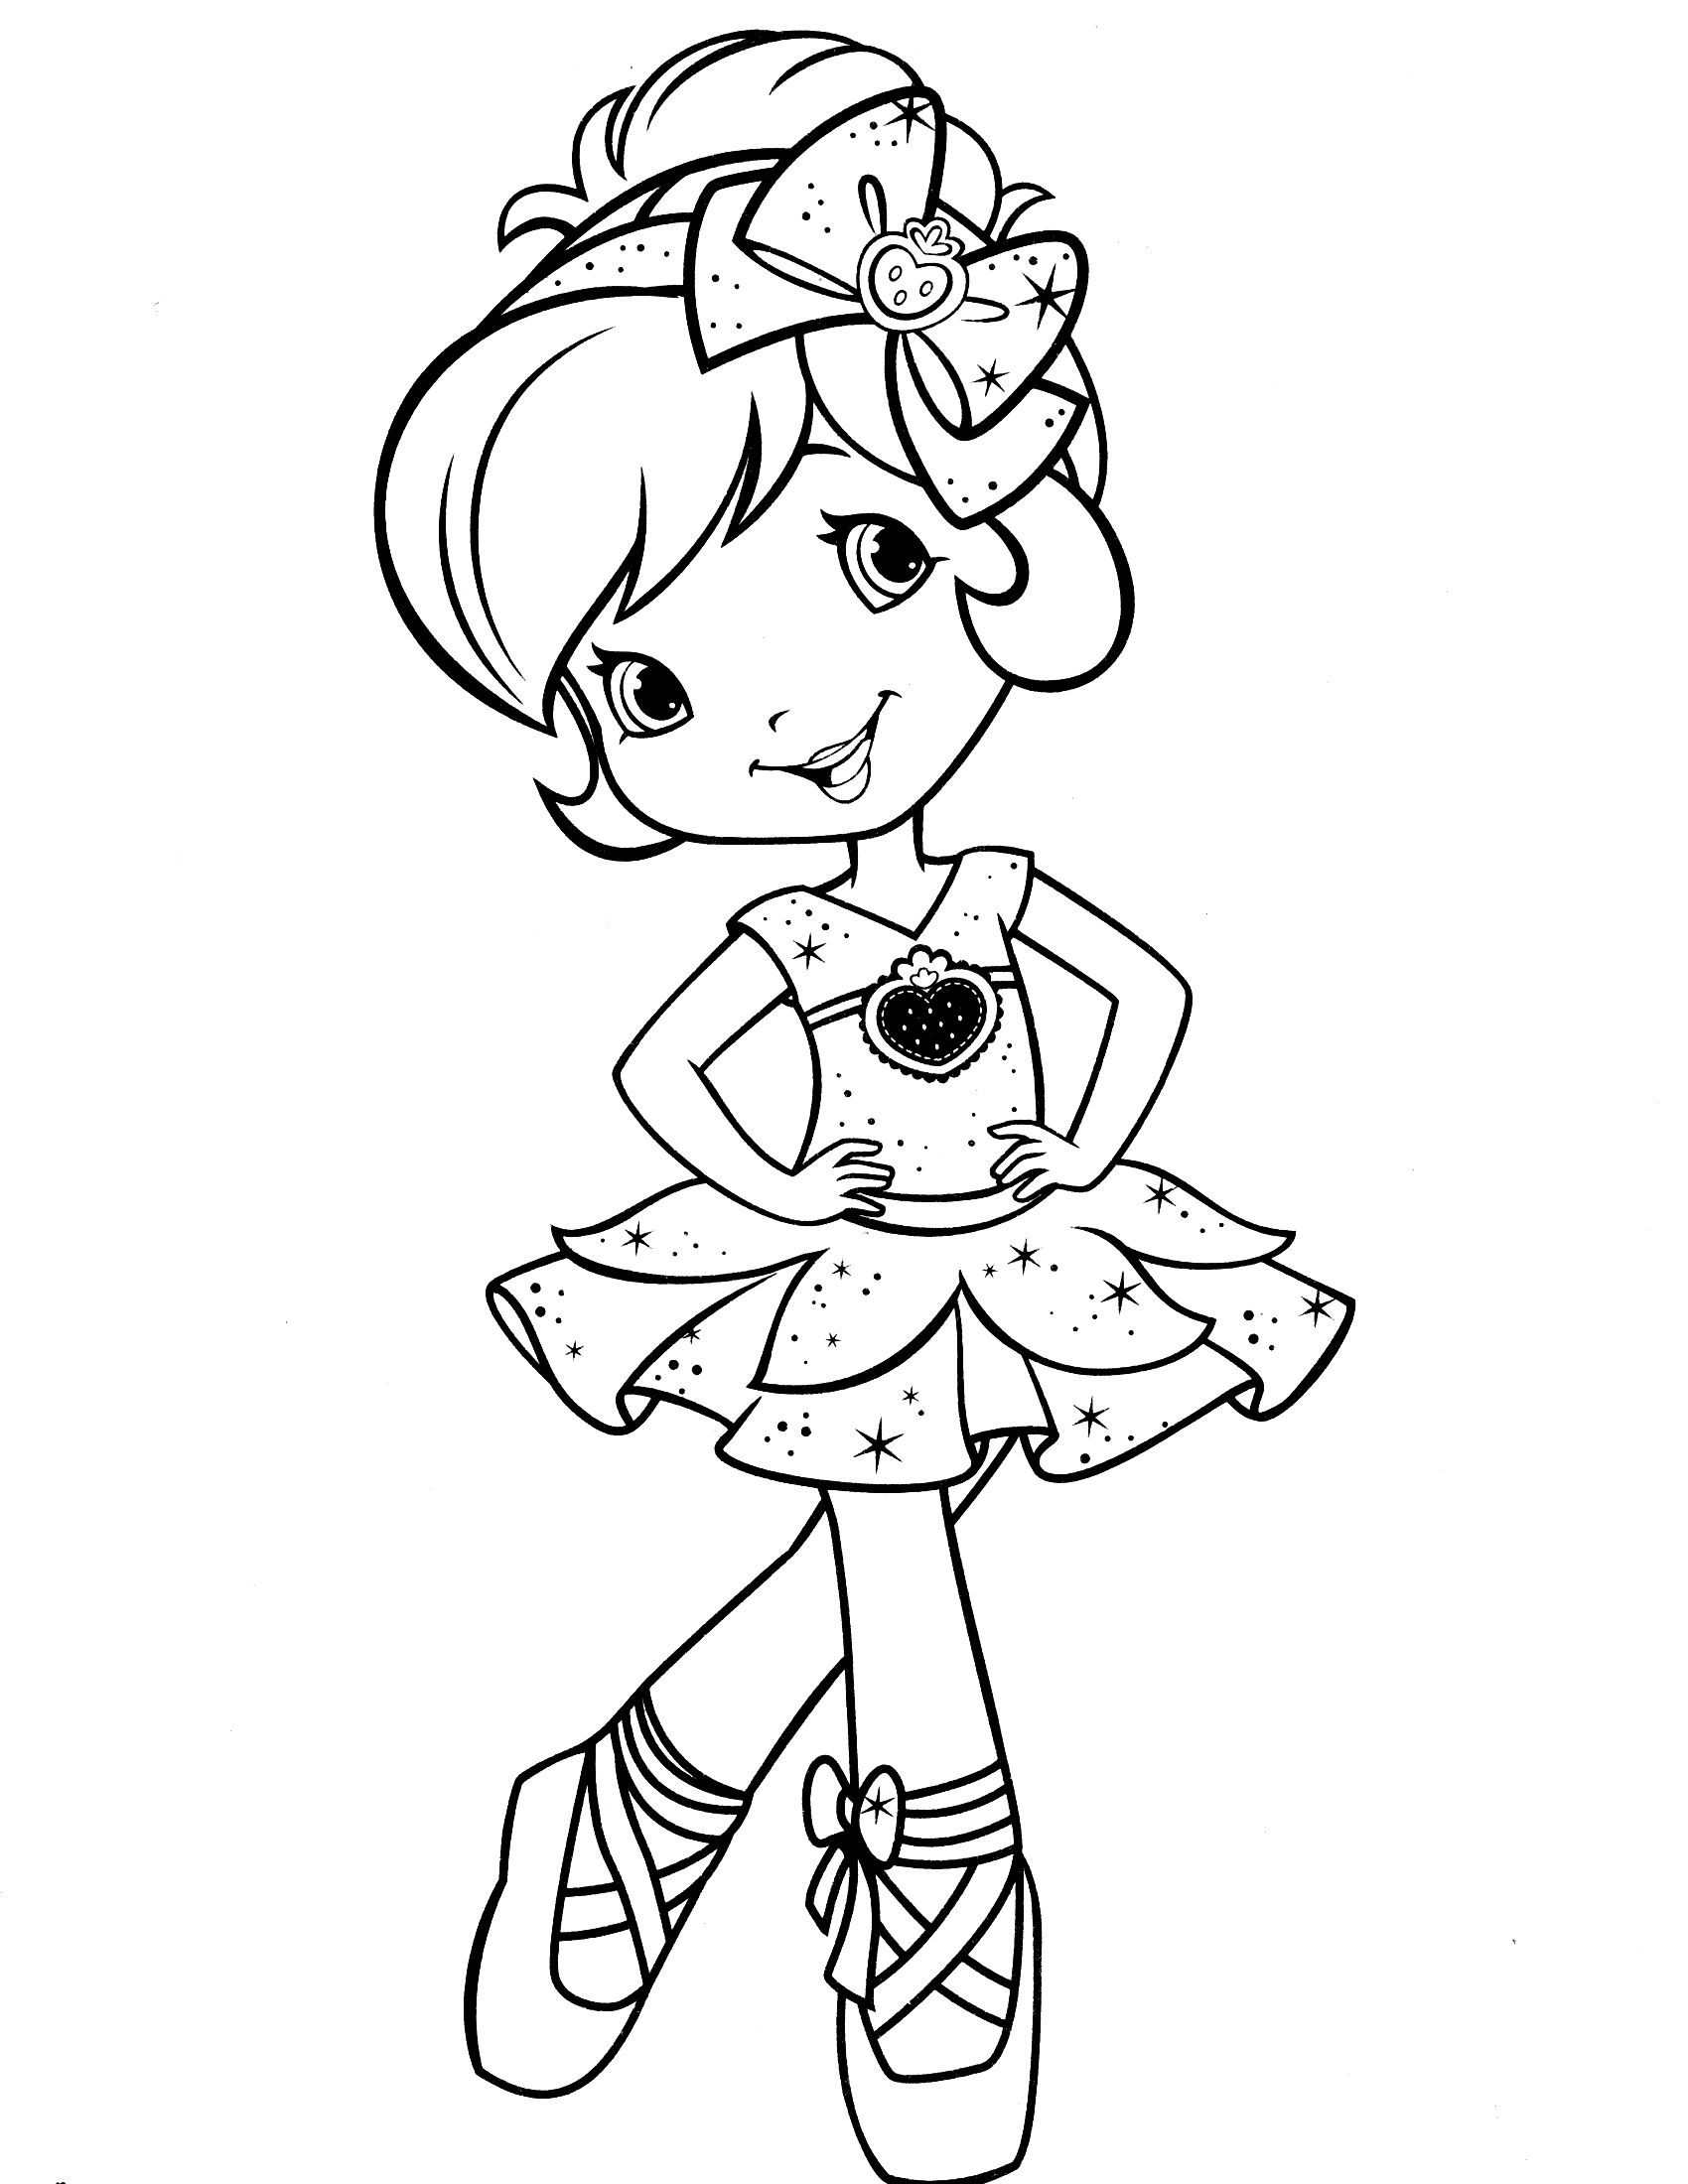 strawberry shortcake coloring page | coloriage | Pinterest ...